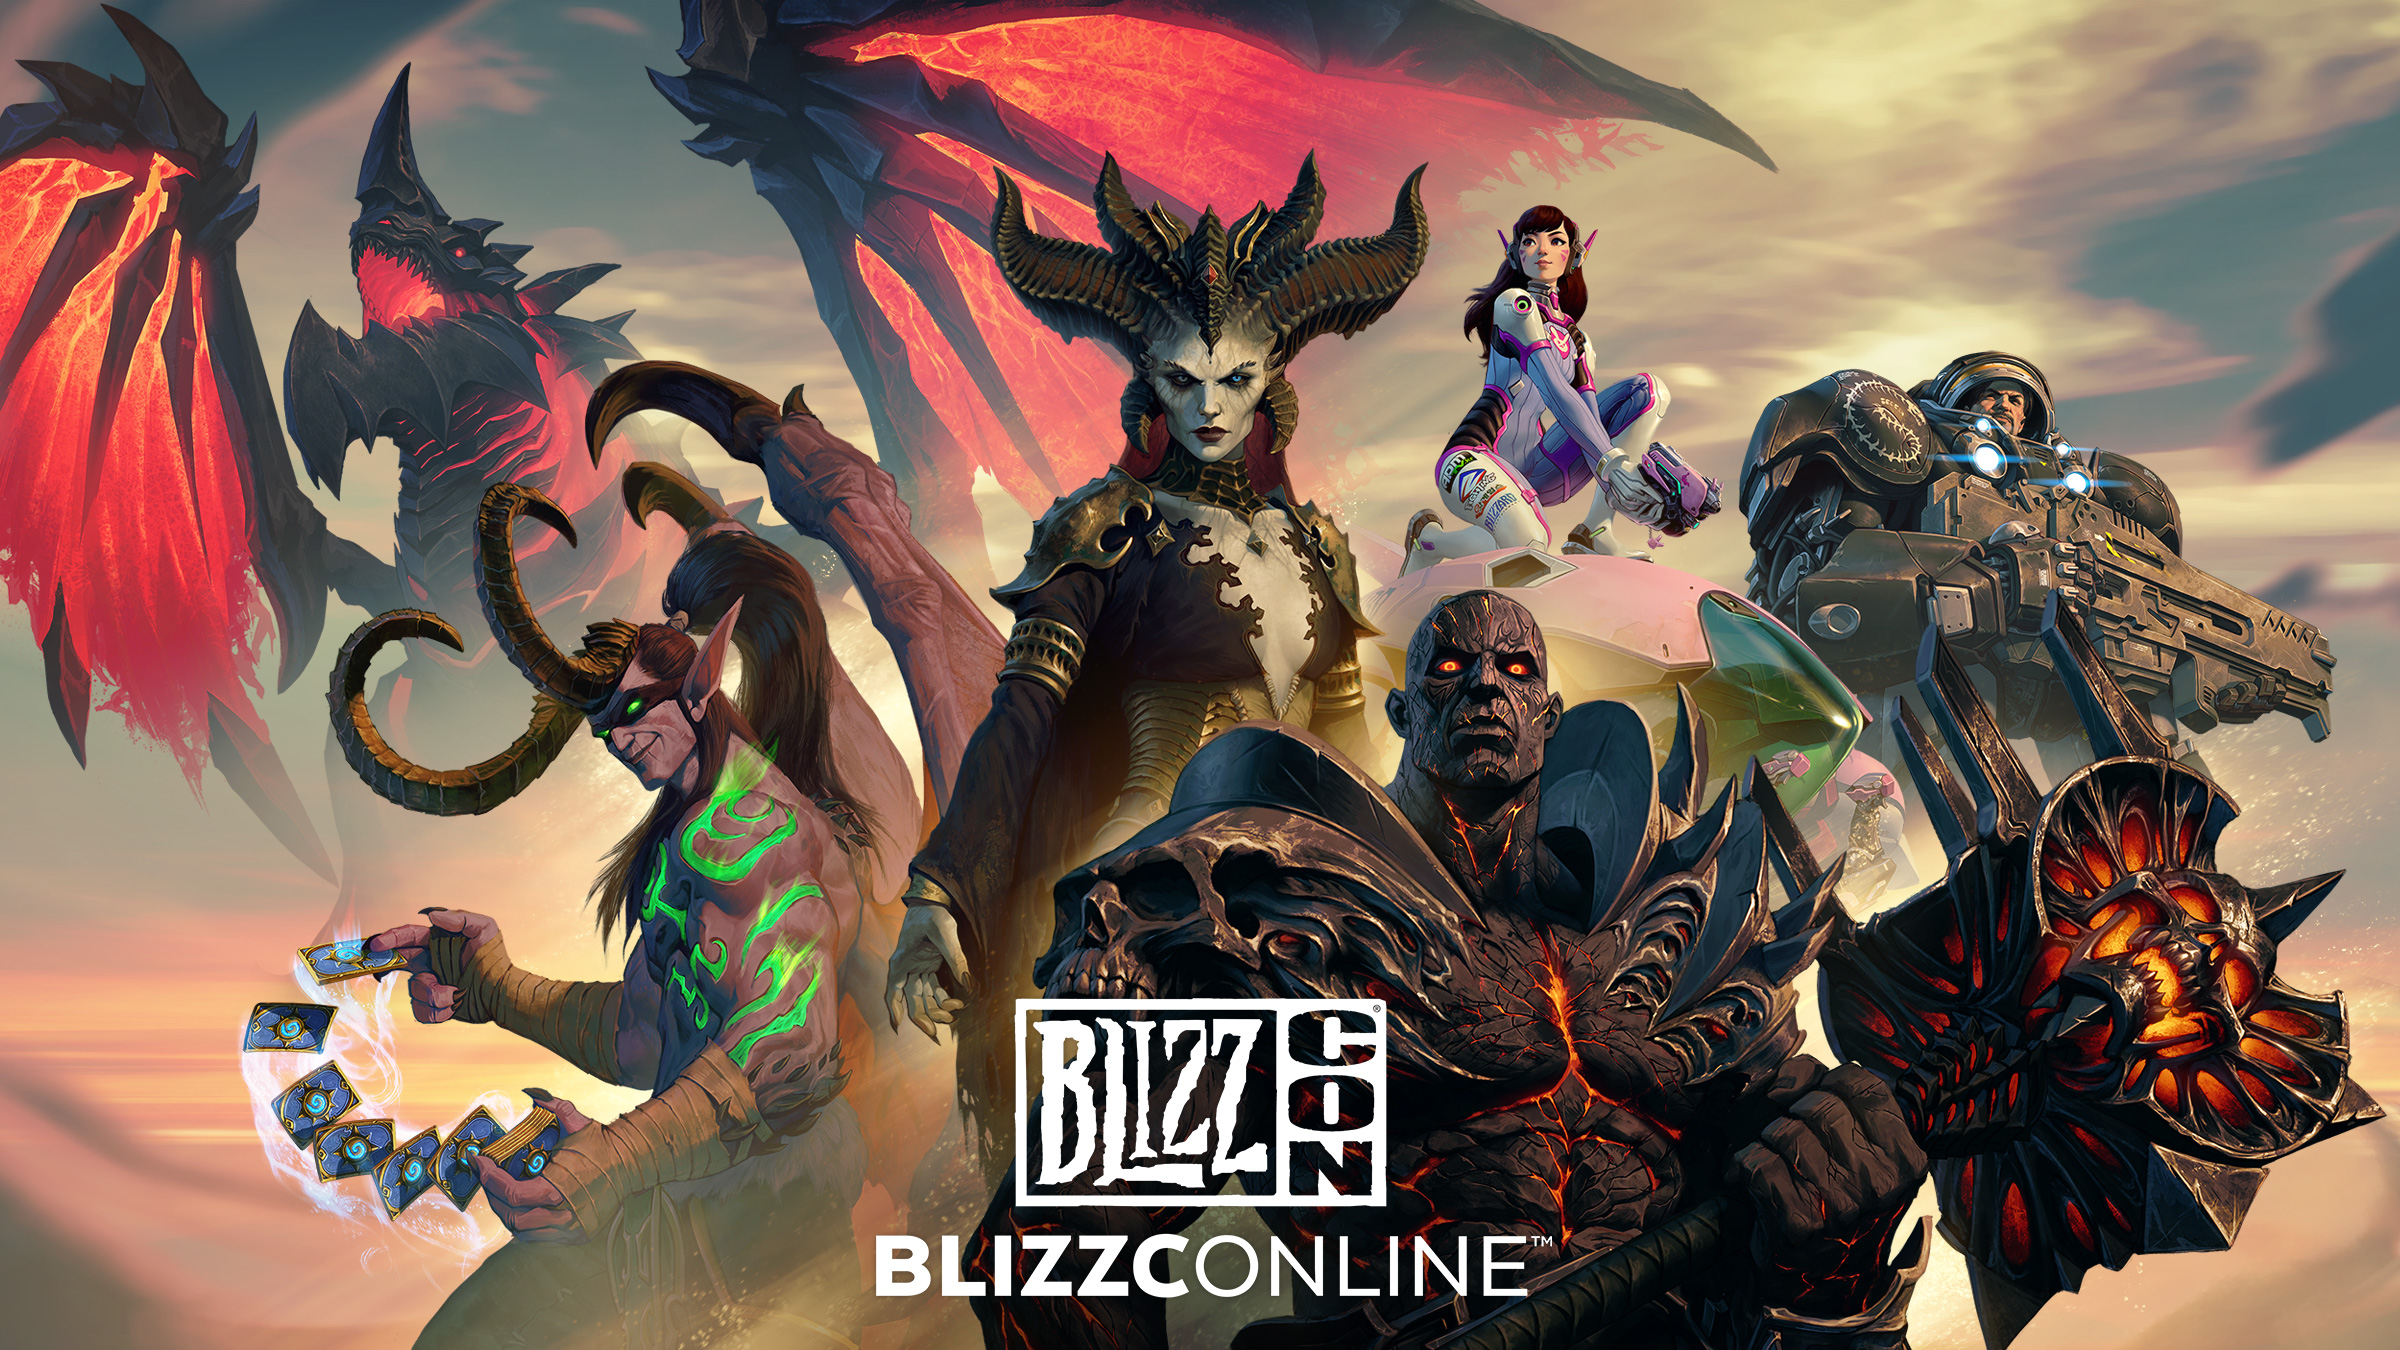 Résumé des informations au sujet de World of Warcraft de la BlizzConline